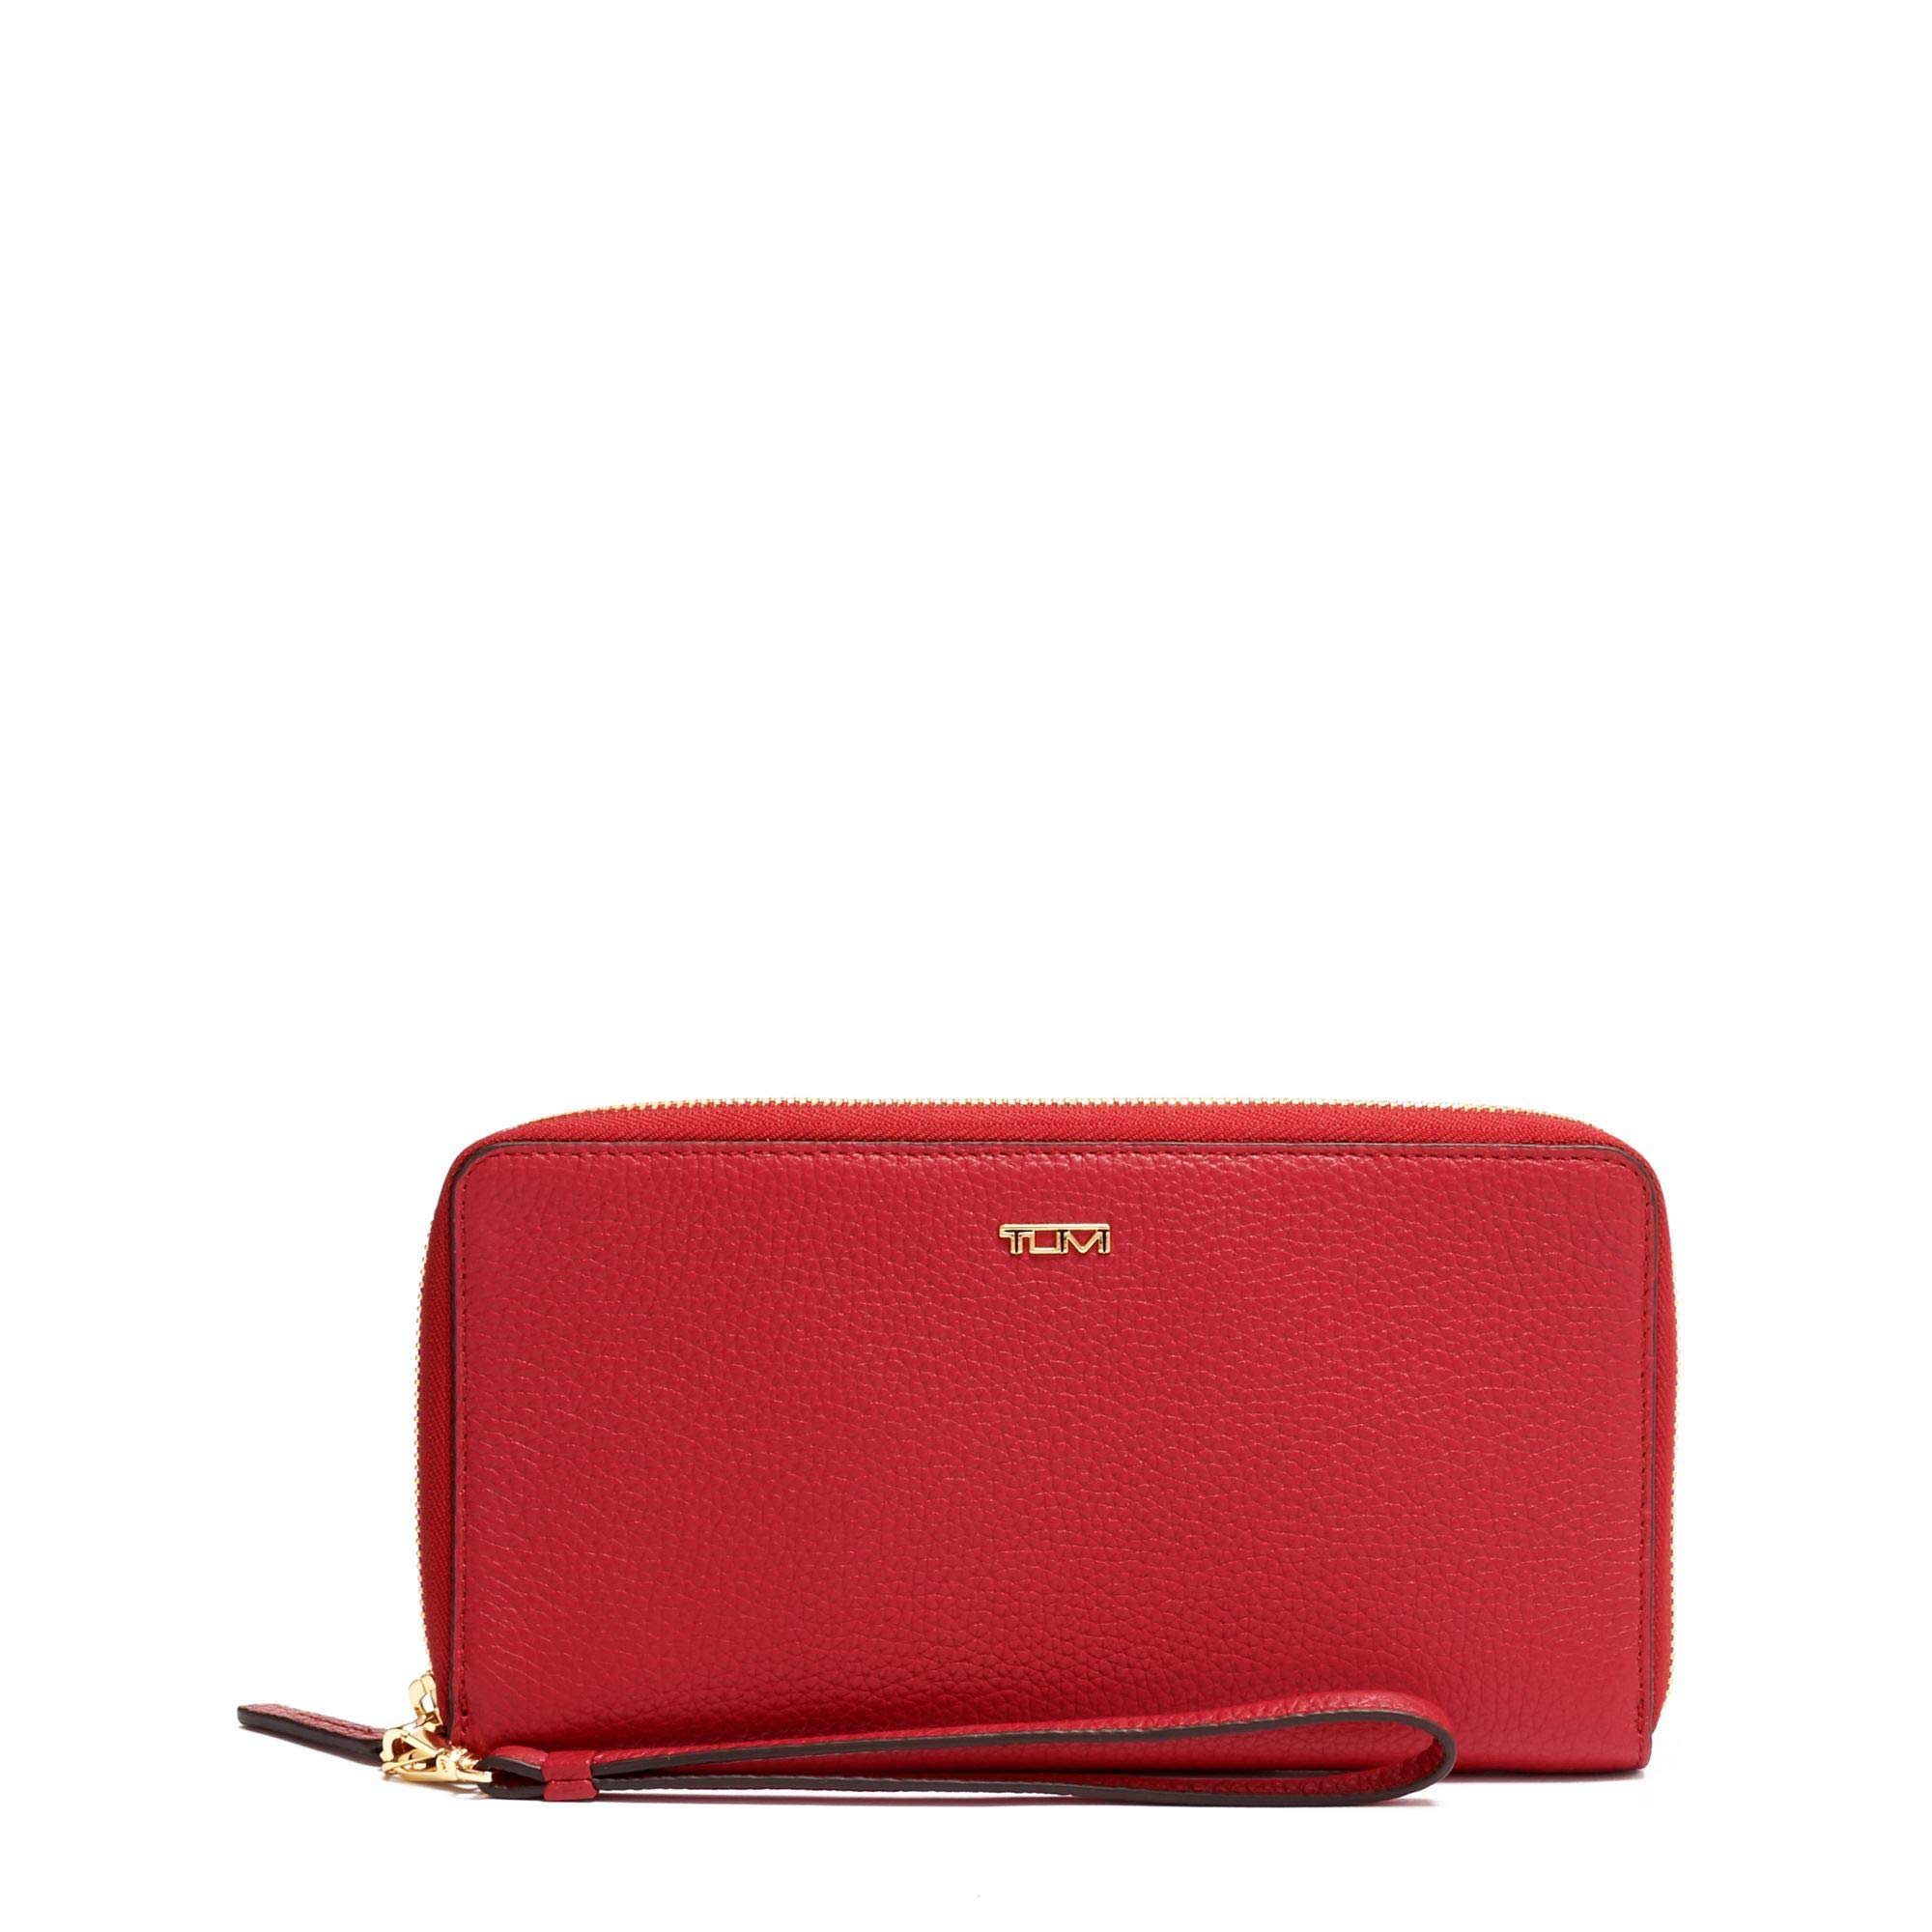 TUMI - Belden Travel Wallet - Orchid by TUMI